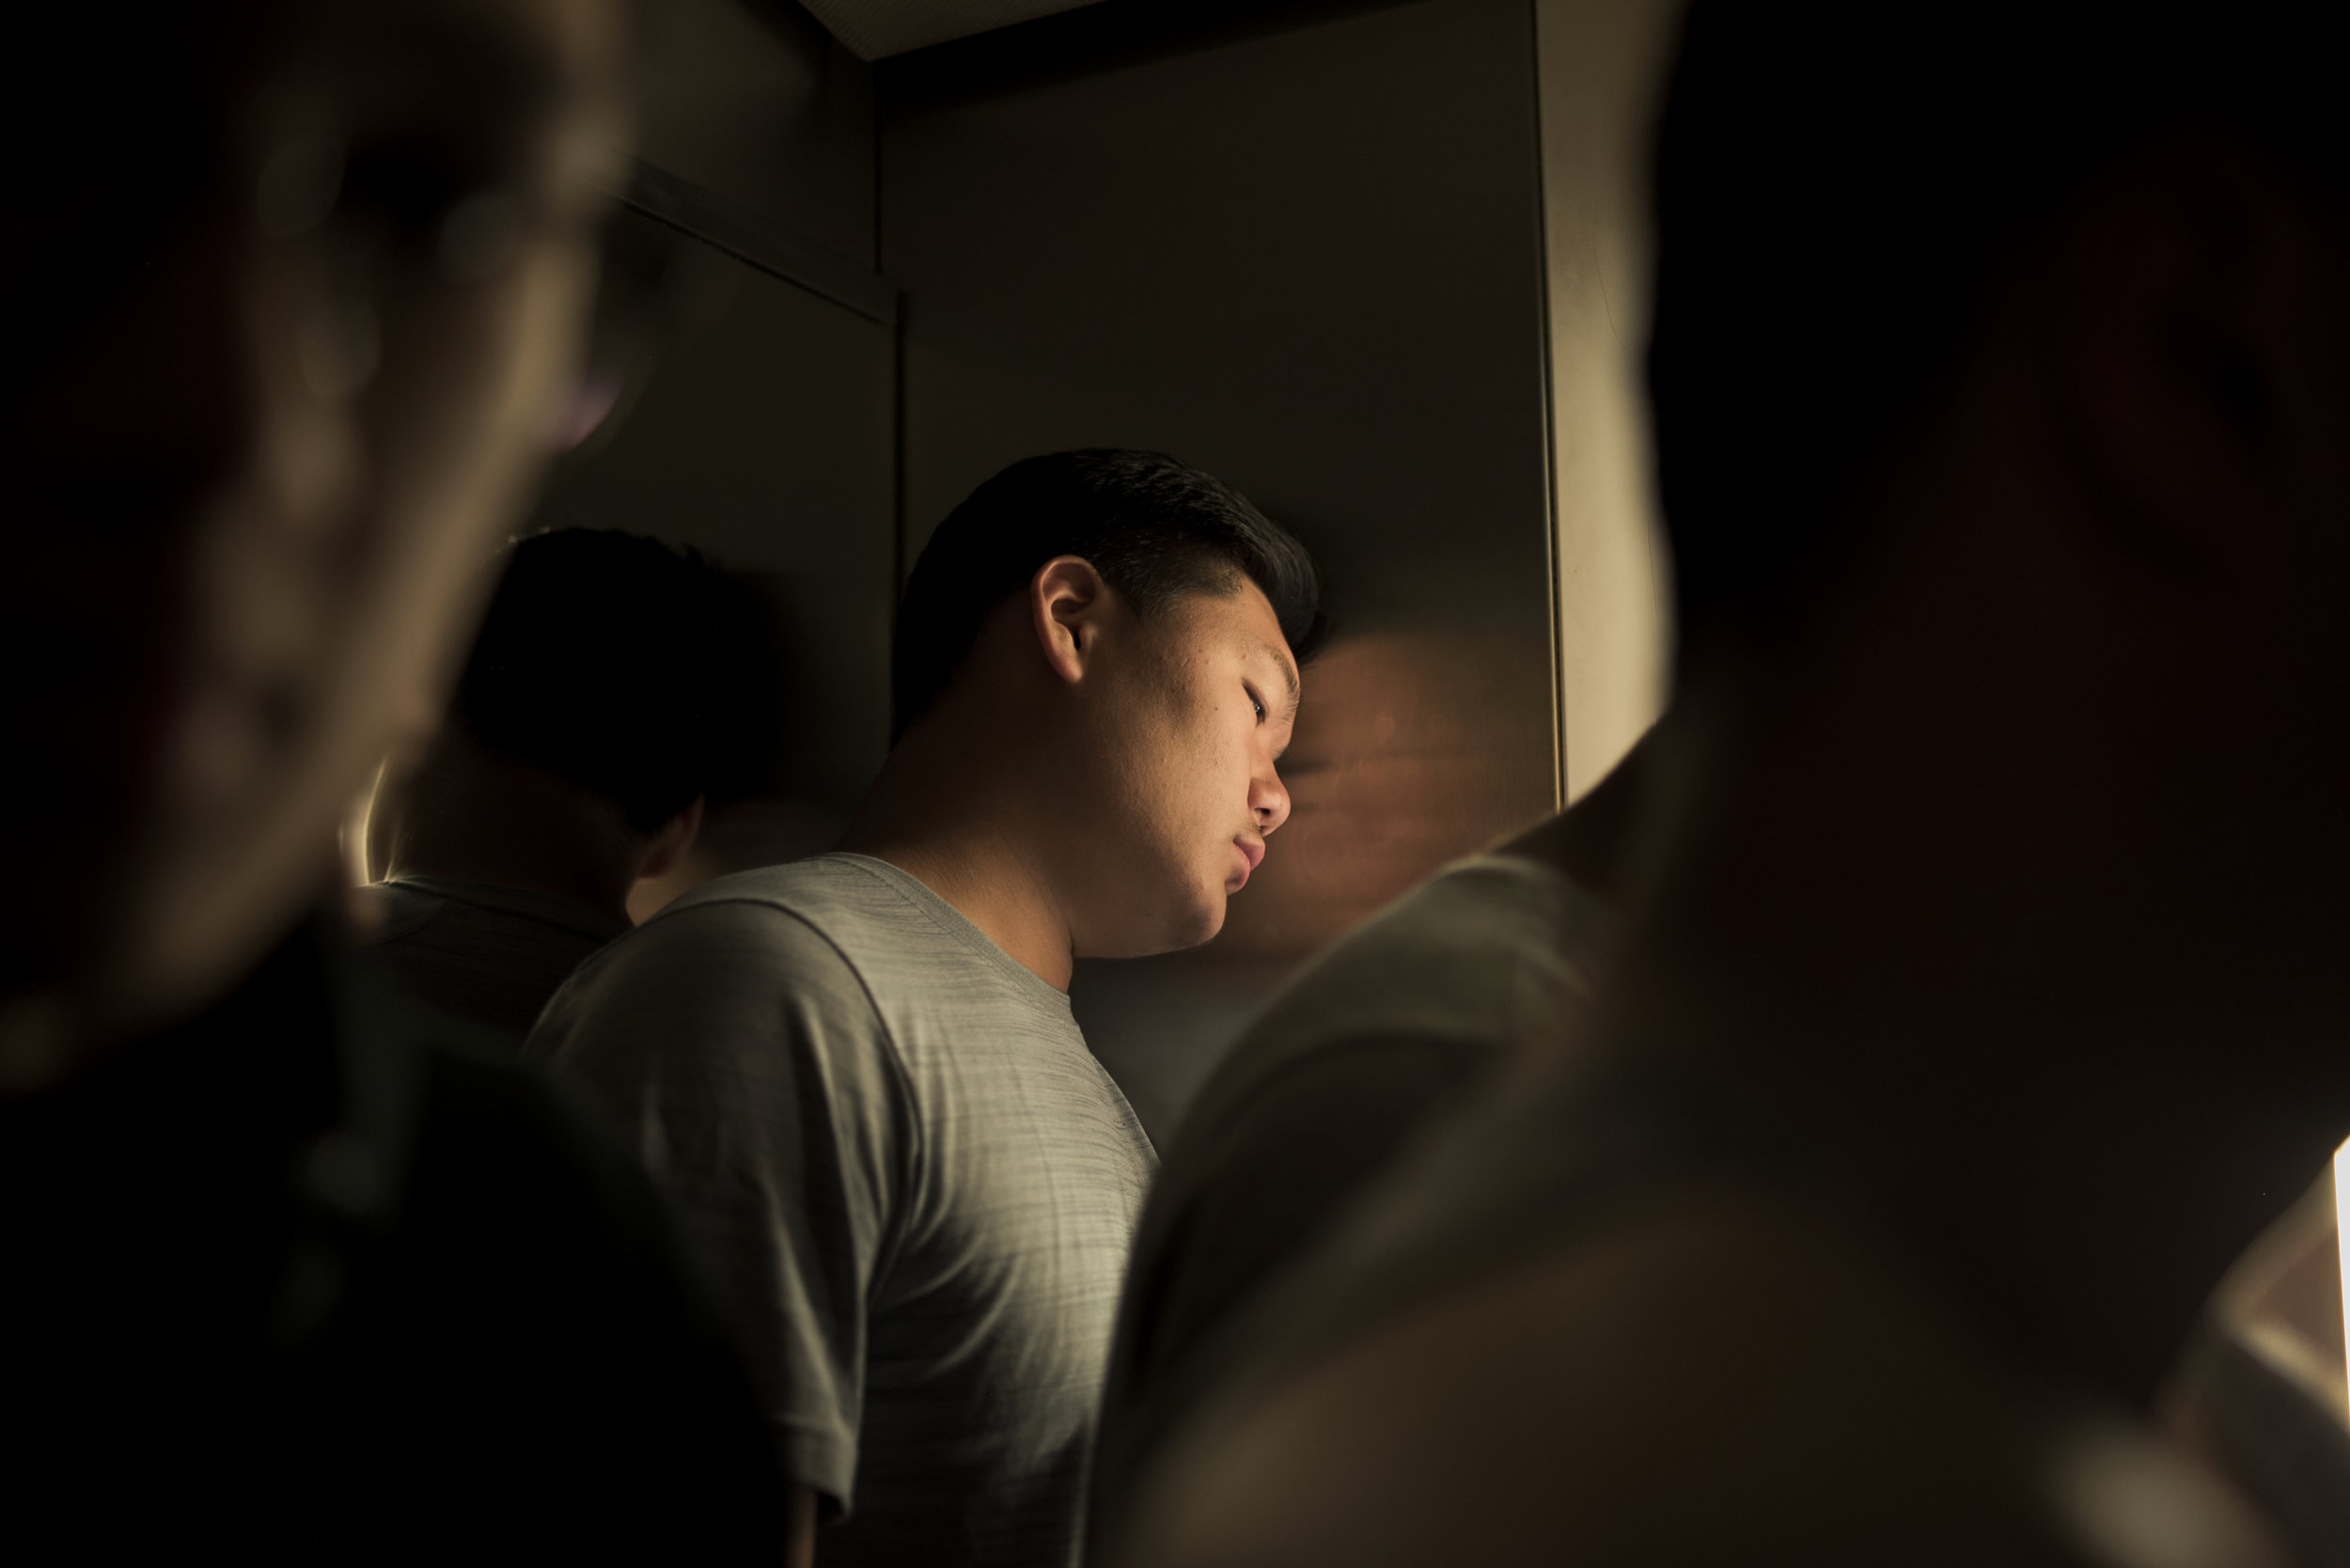 Chinese tight end Liwen Zhang rests his head in an elevator before their game against the Japanese that evening at the 2016 American Football World University Championship on June 10, 2016 in Monterrey, Mexico.